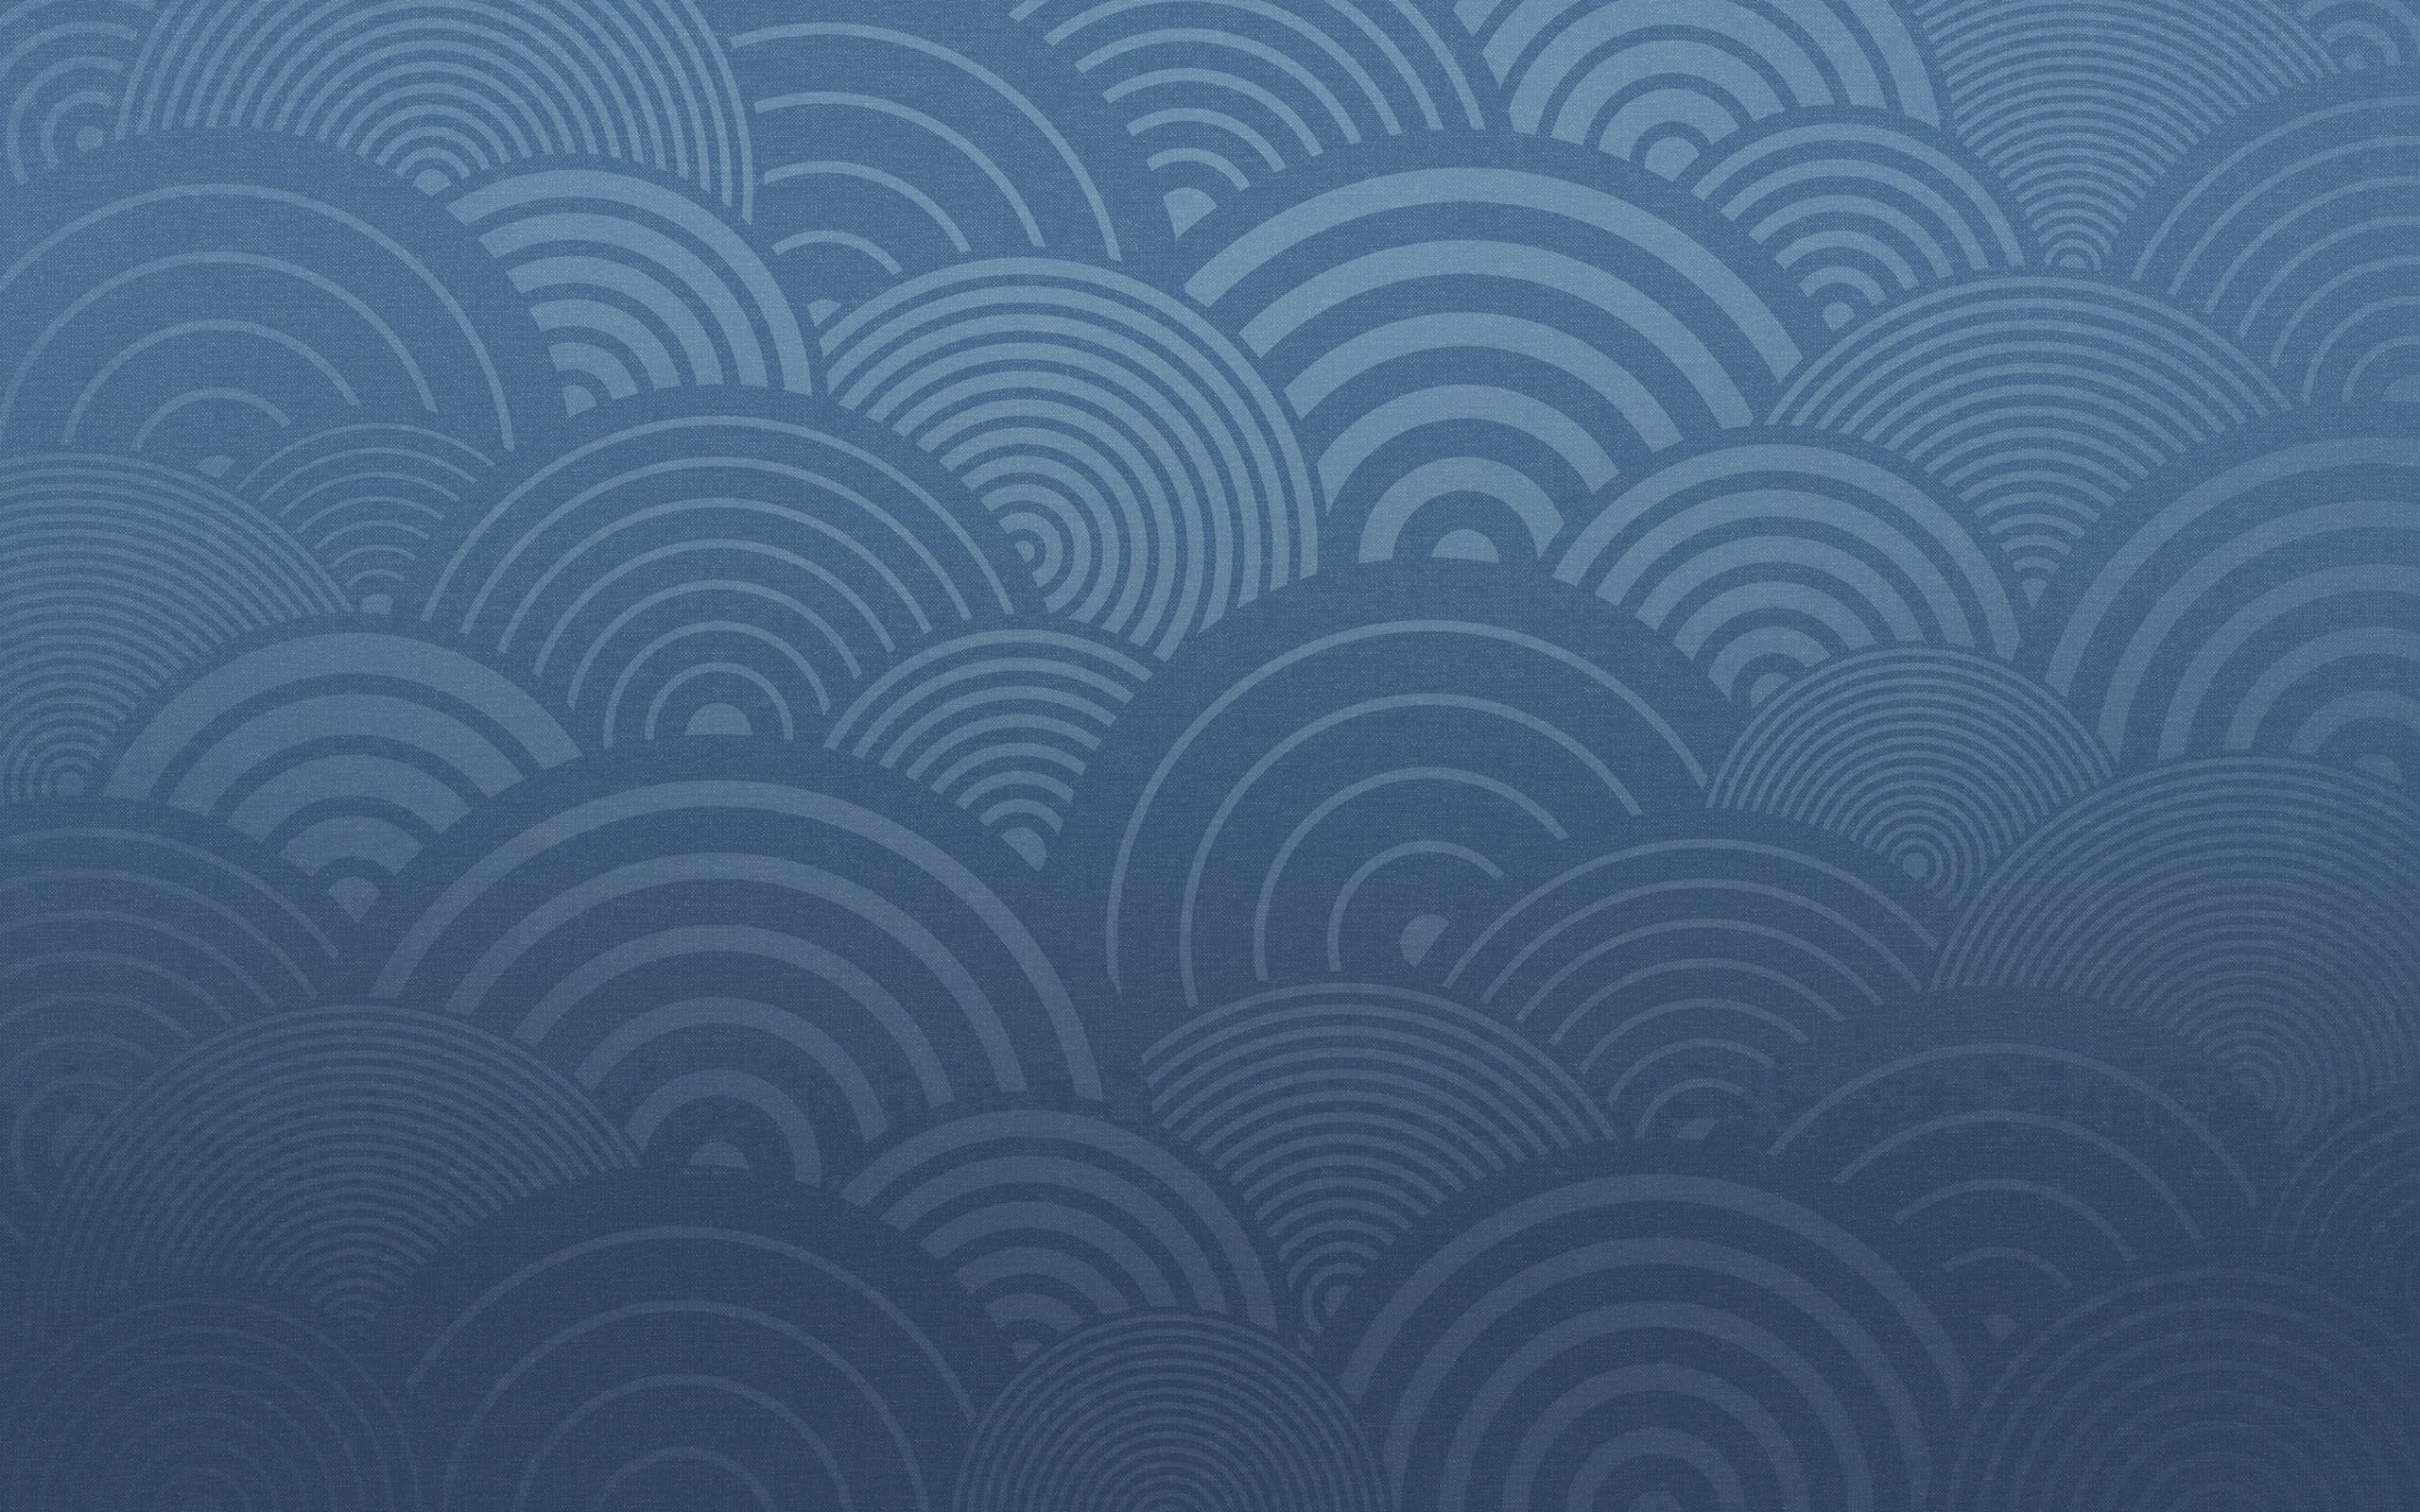 Ios 6 Wallpaper Hd Circles 和风装饰背景 Mac Os 壁纸 2560x1600下载 10wallpaper Com